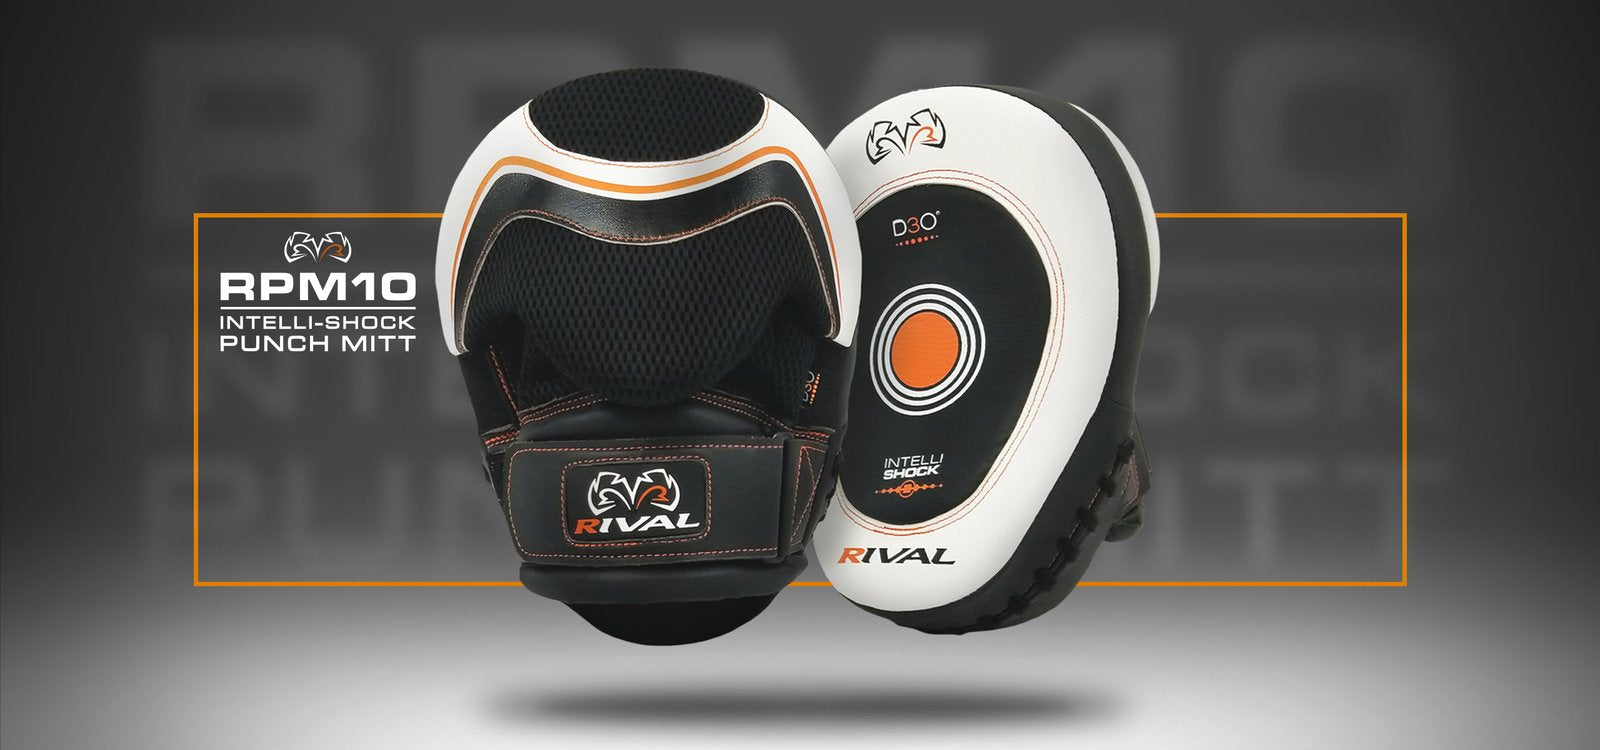 Rival RPM10 Punch Mitts